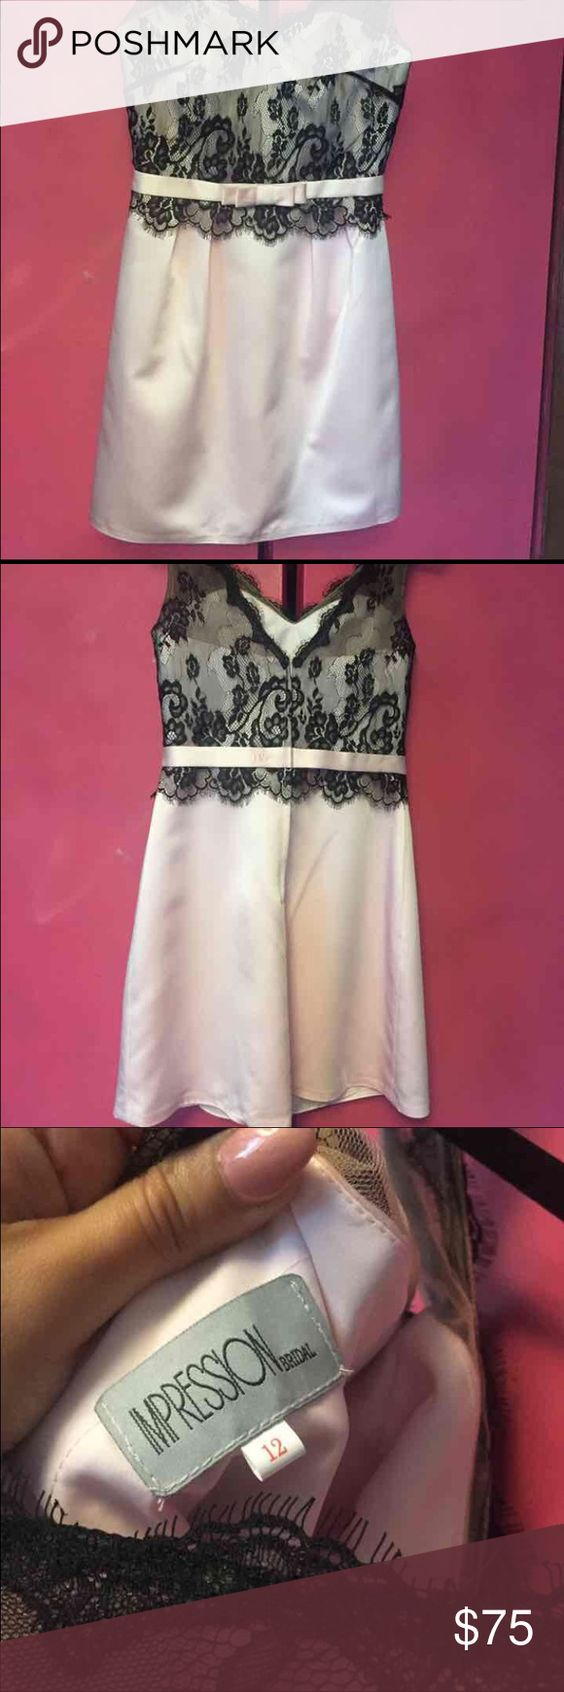 Nice Pink and Black lace dress! Lace black top with bottom pink Satin!! Never worn but doesn't have tags Dresses Mini